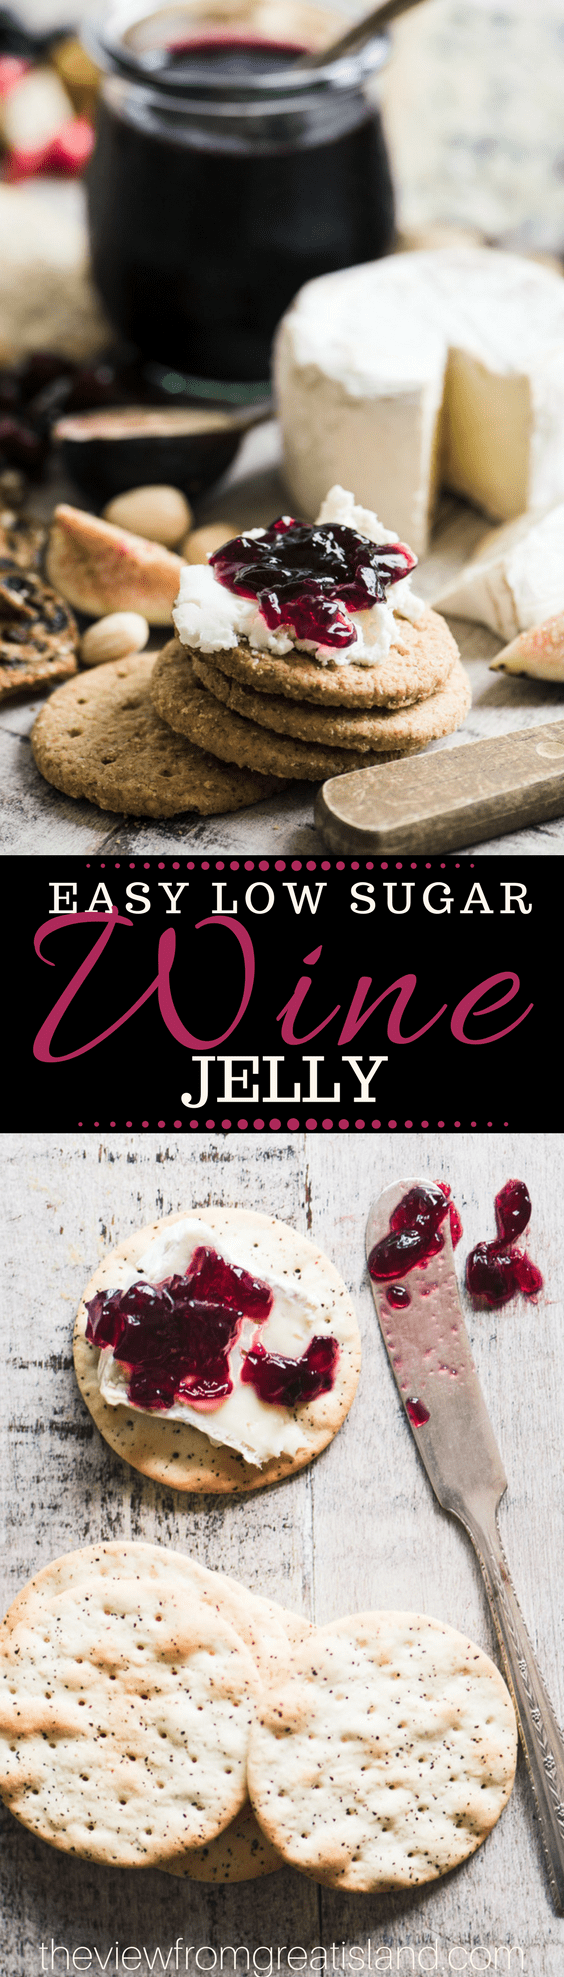 This Easy Low Sugar Wine Jelly Recipe enhances everything from cheese plates to turkey sandwiches.  #jam #preserves #wine #bestpartyappetizer #bestwinejelly #cocktailparty #entertaining #holidayappetizer #foodgift #hostessgift #redwine